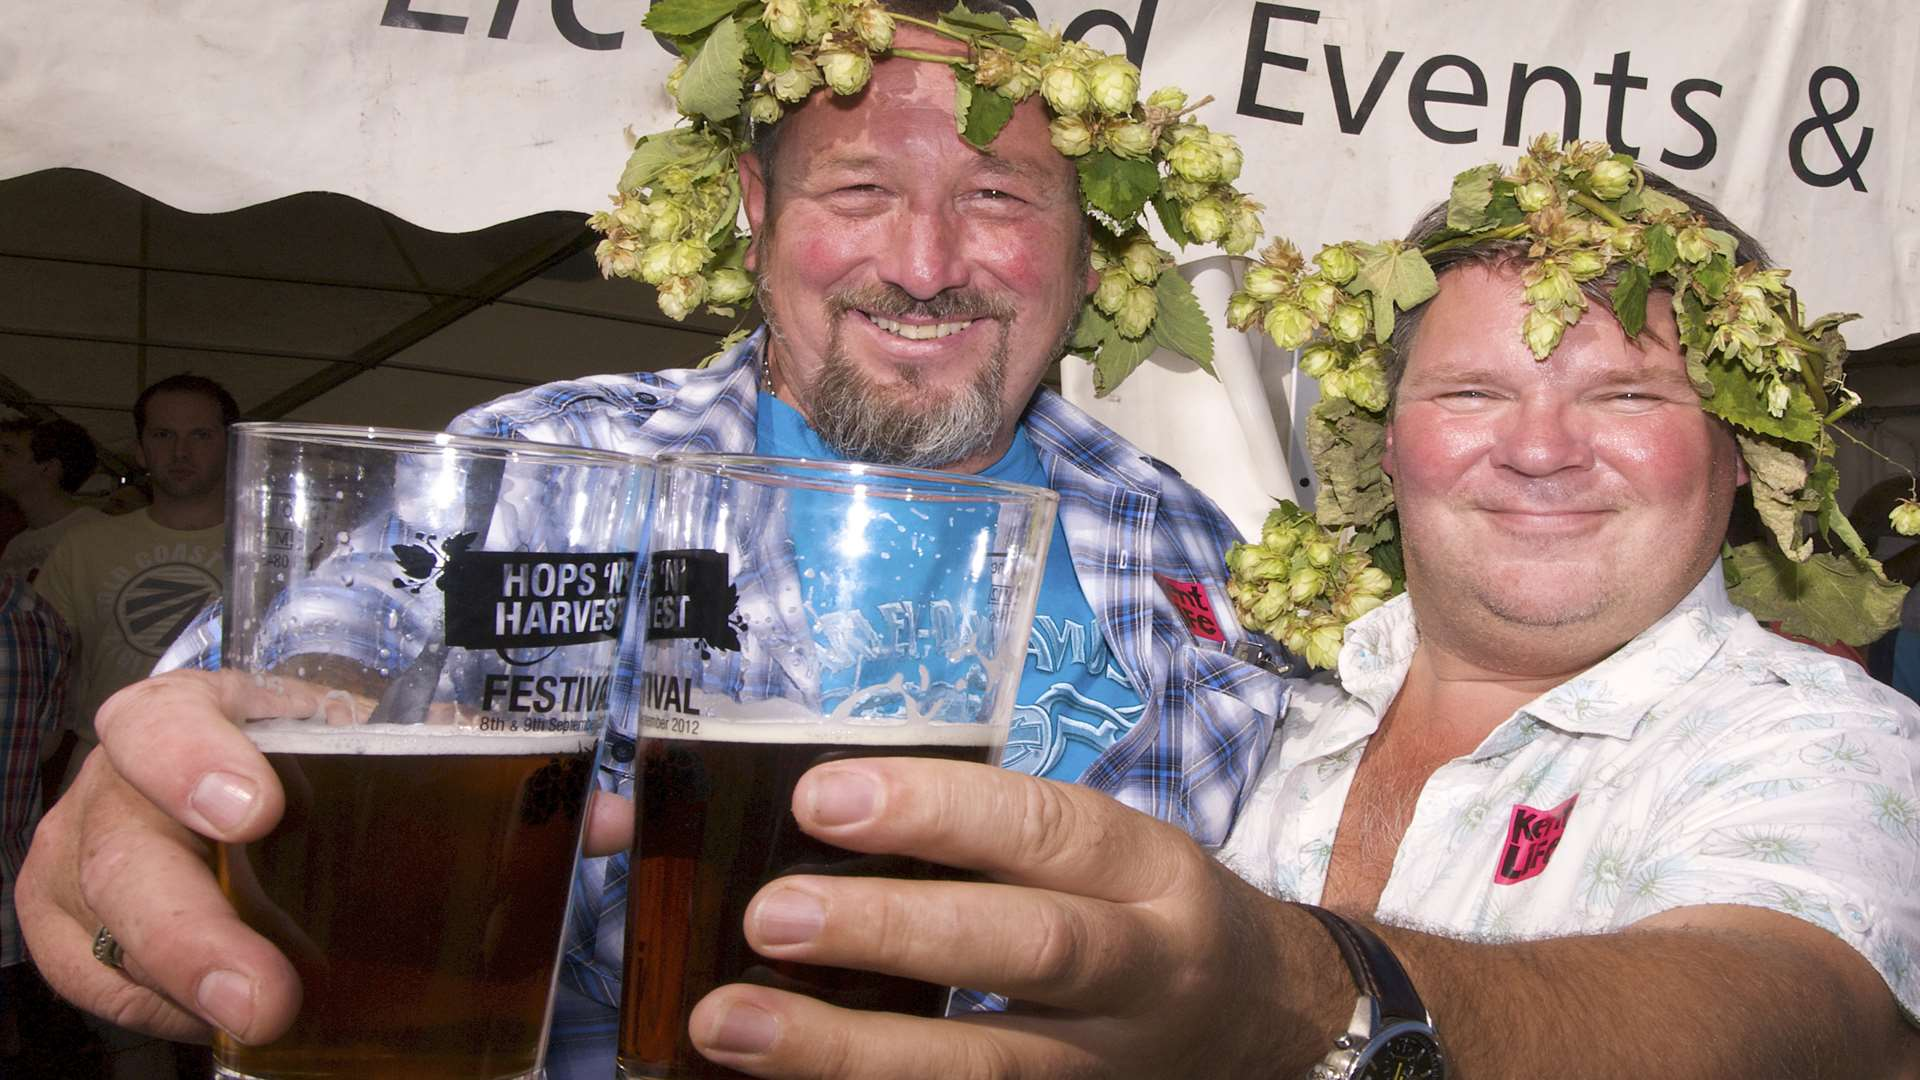 Raise at glass to the hops harvest at Kent Life